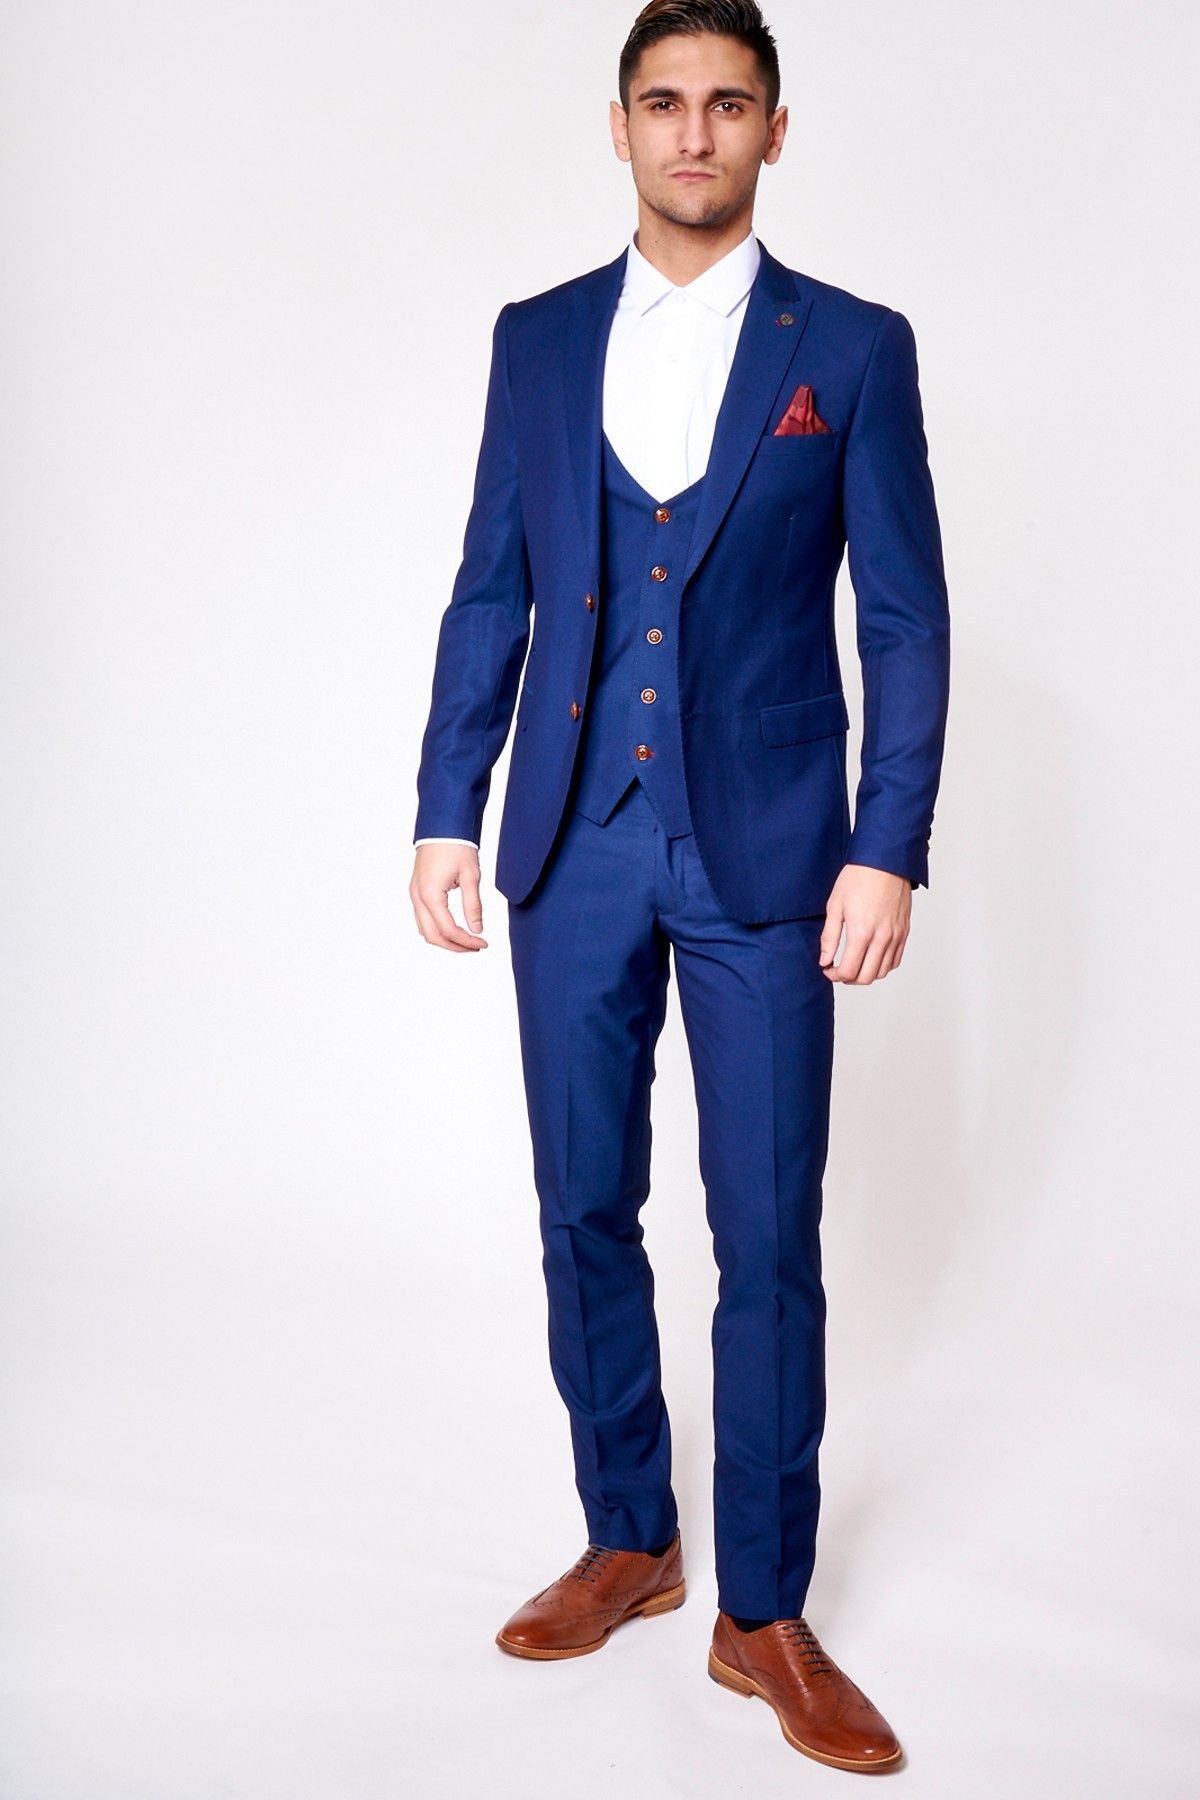 Mens Suit   Three Piece   Navy   Tailored   Belmont   Marc Darcy Marc Darcy  Menswear 9e7a10420f